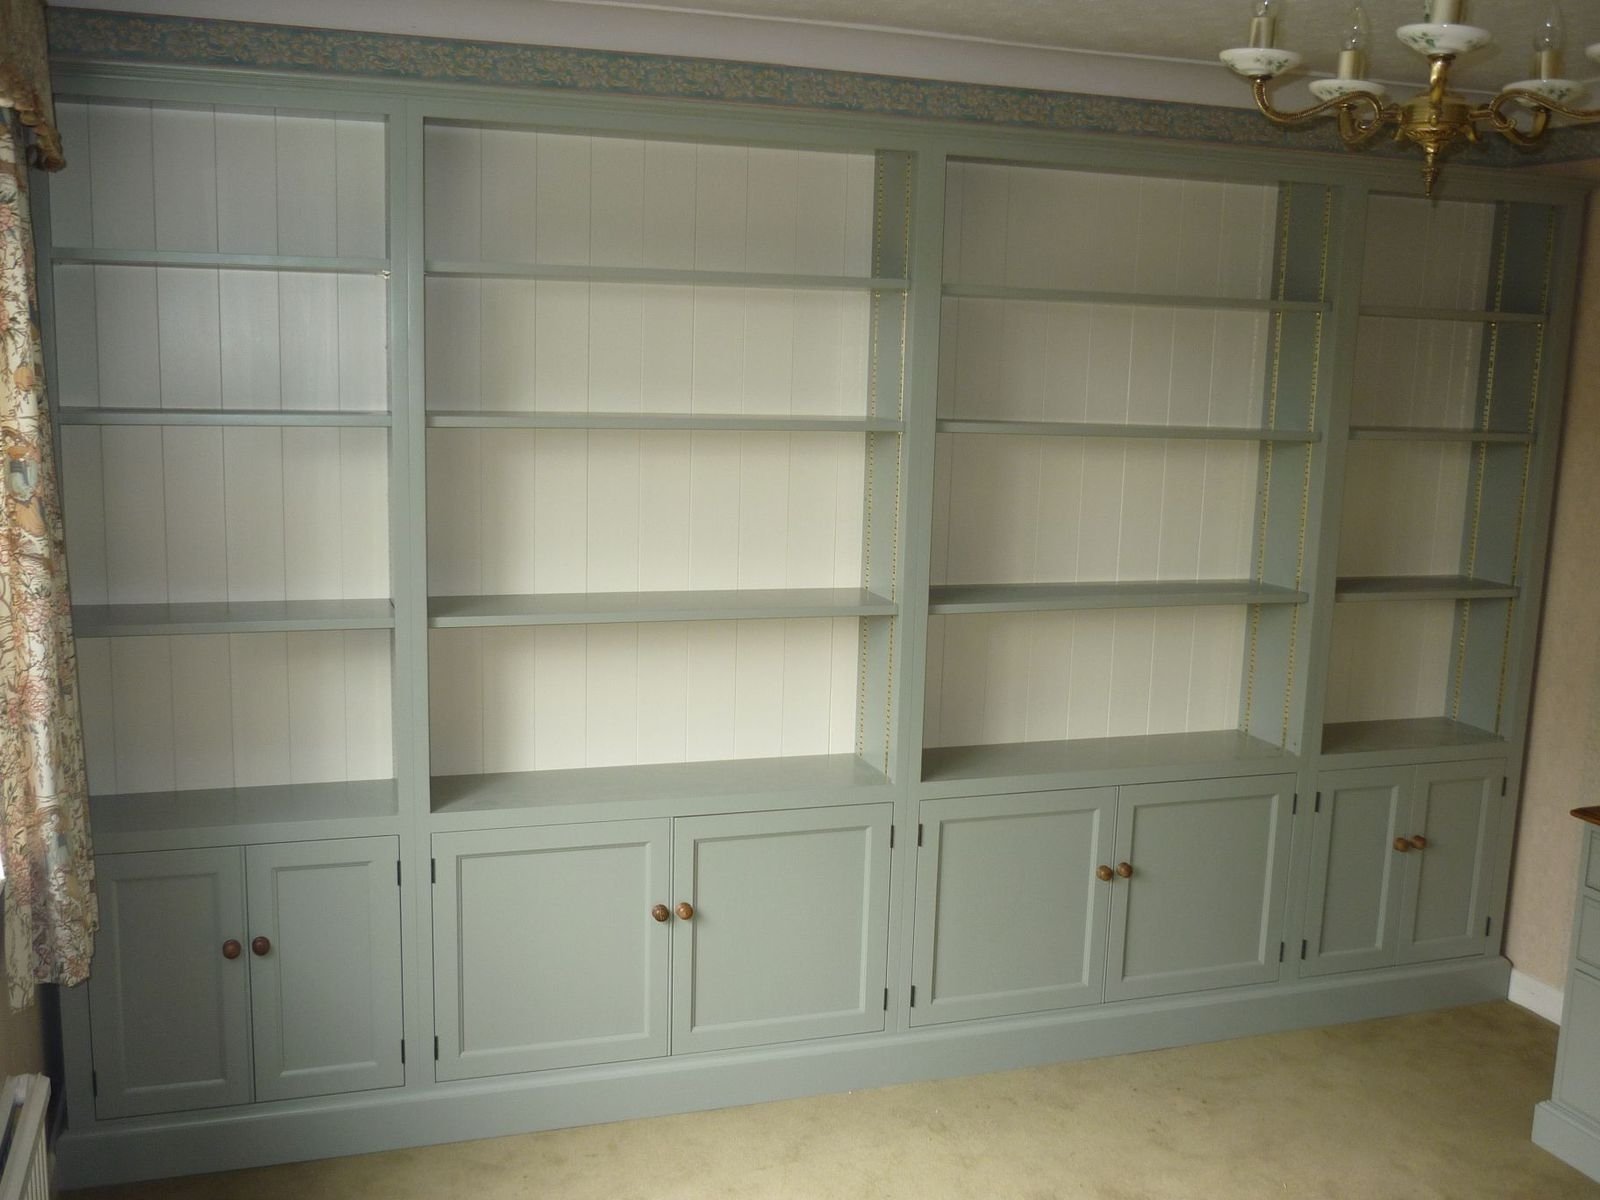 Bespoke Office Furniture With Huge Bookcase – Painted – Bookcases For Fashionable Bespoke Bookcases (View 7 of 15)